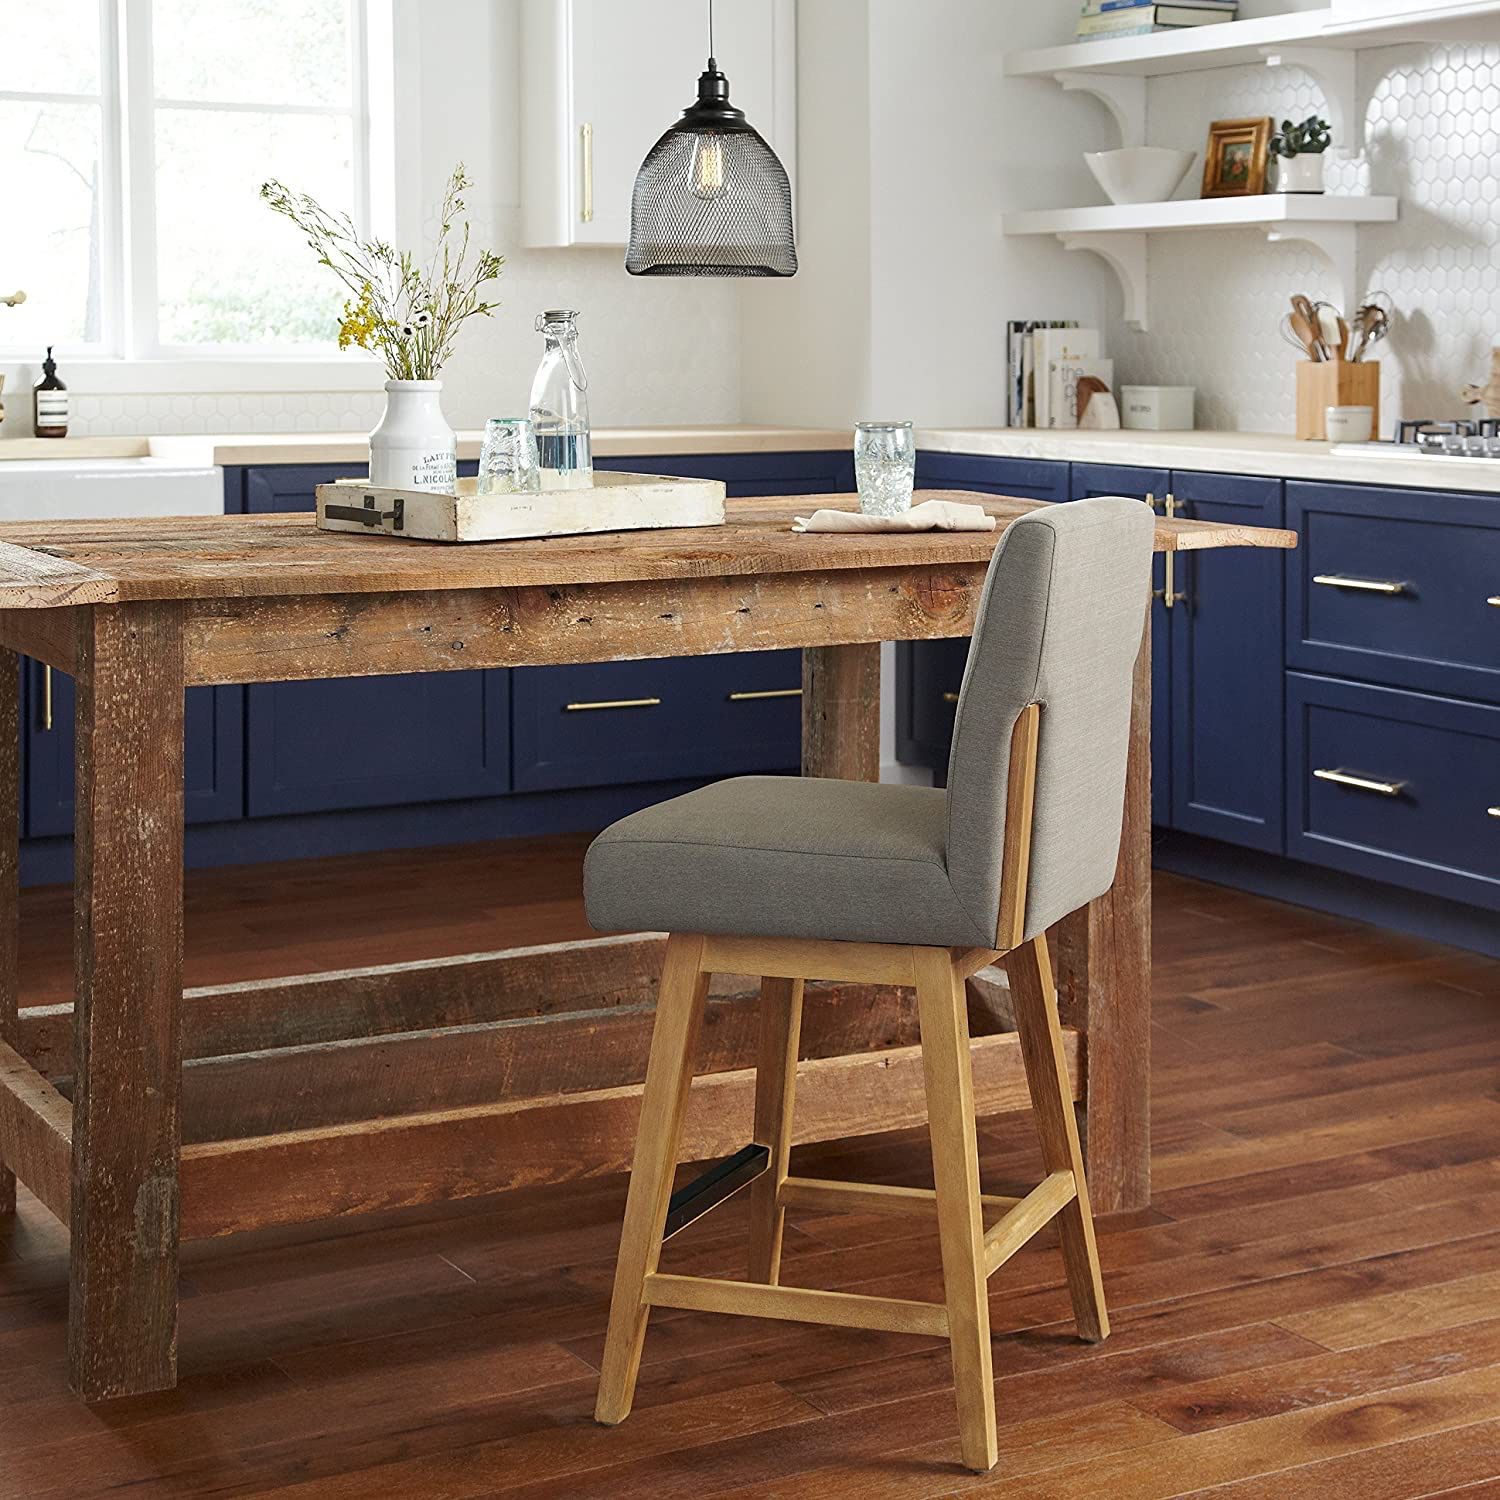 Brand New Kitchen Counter Height Stool